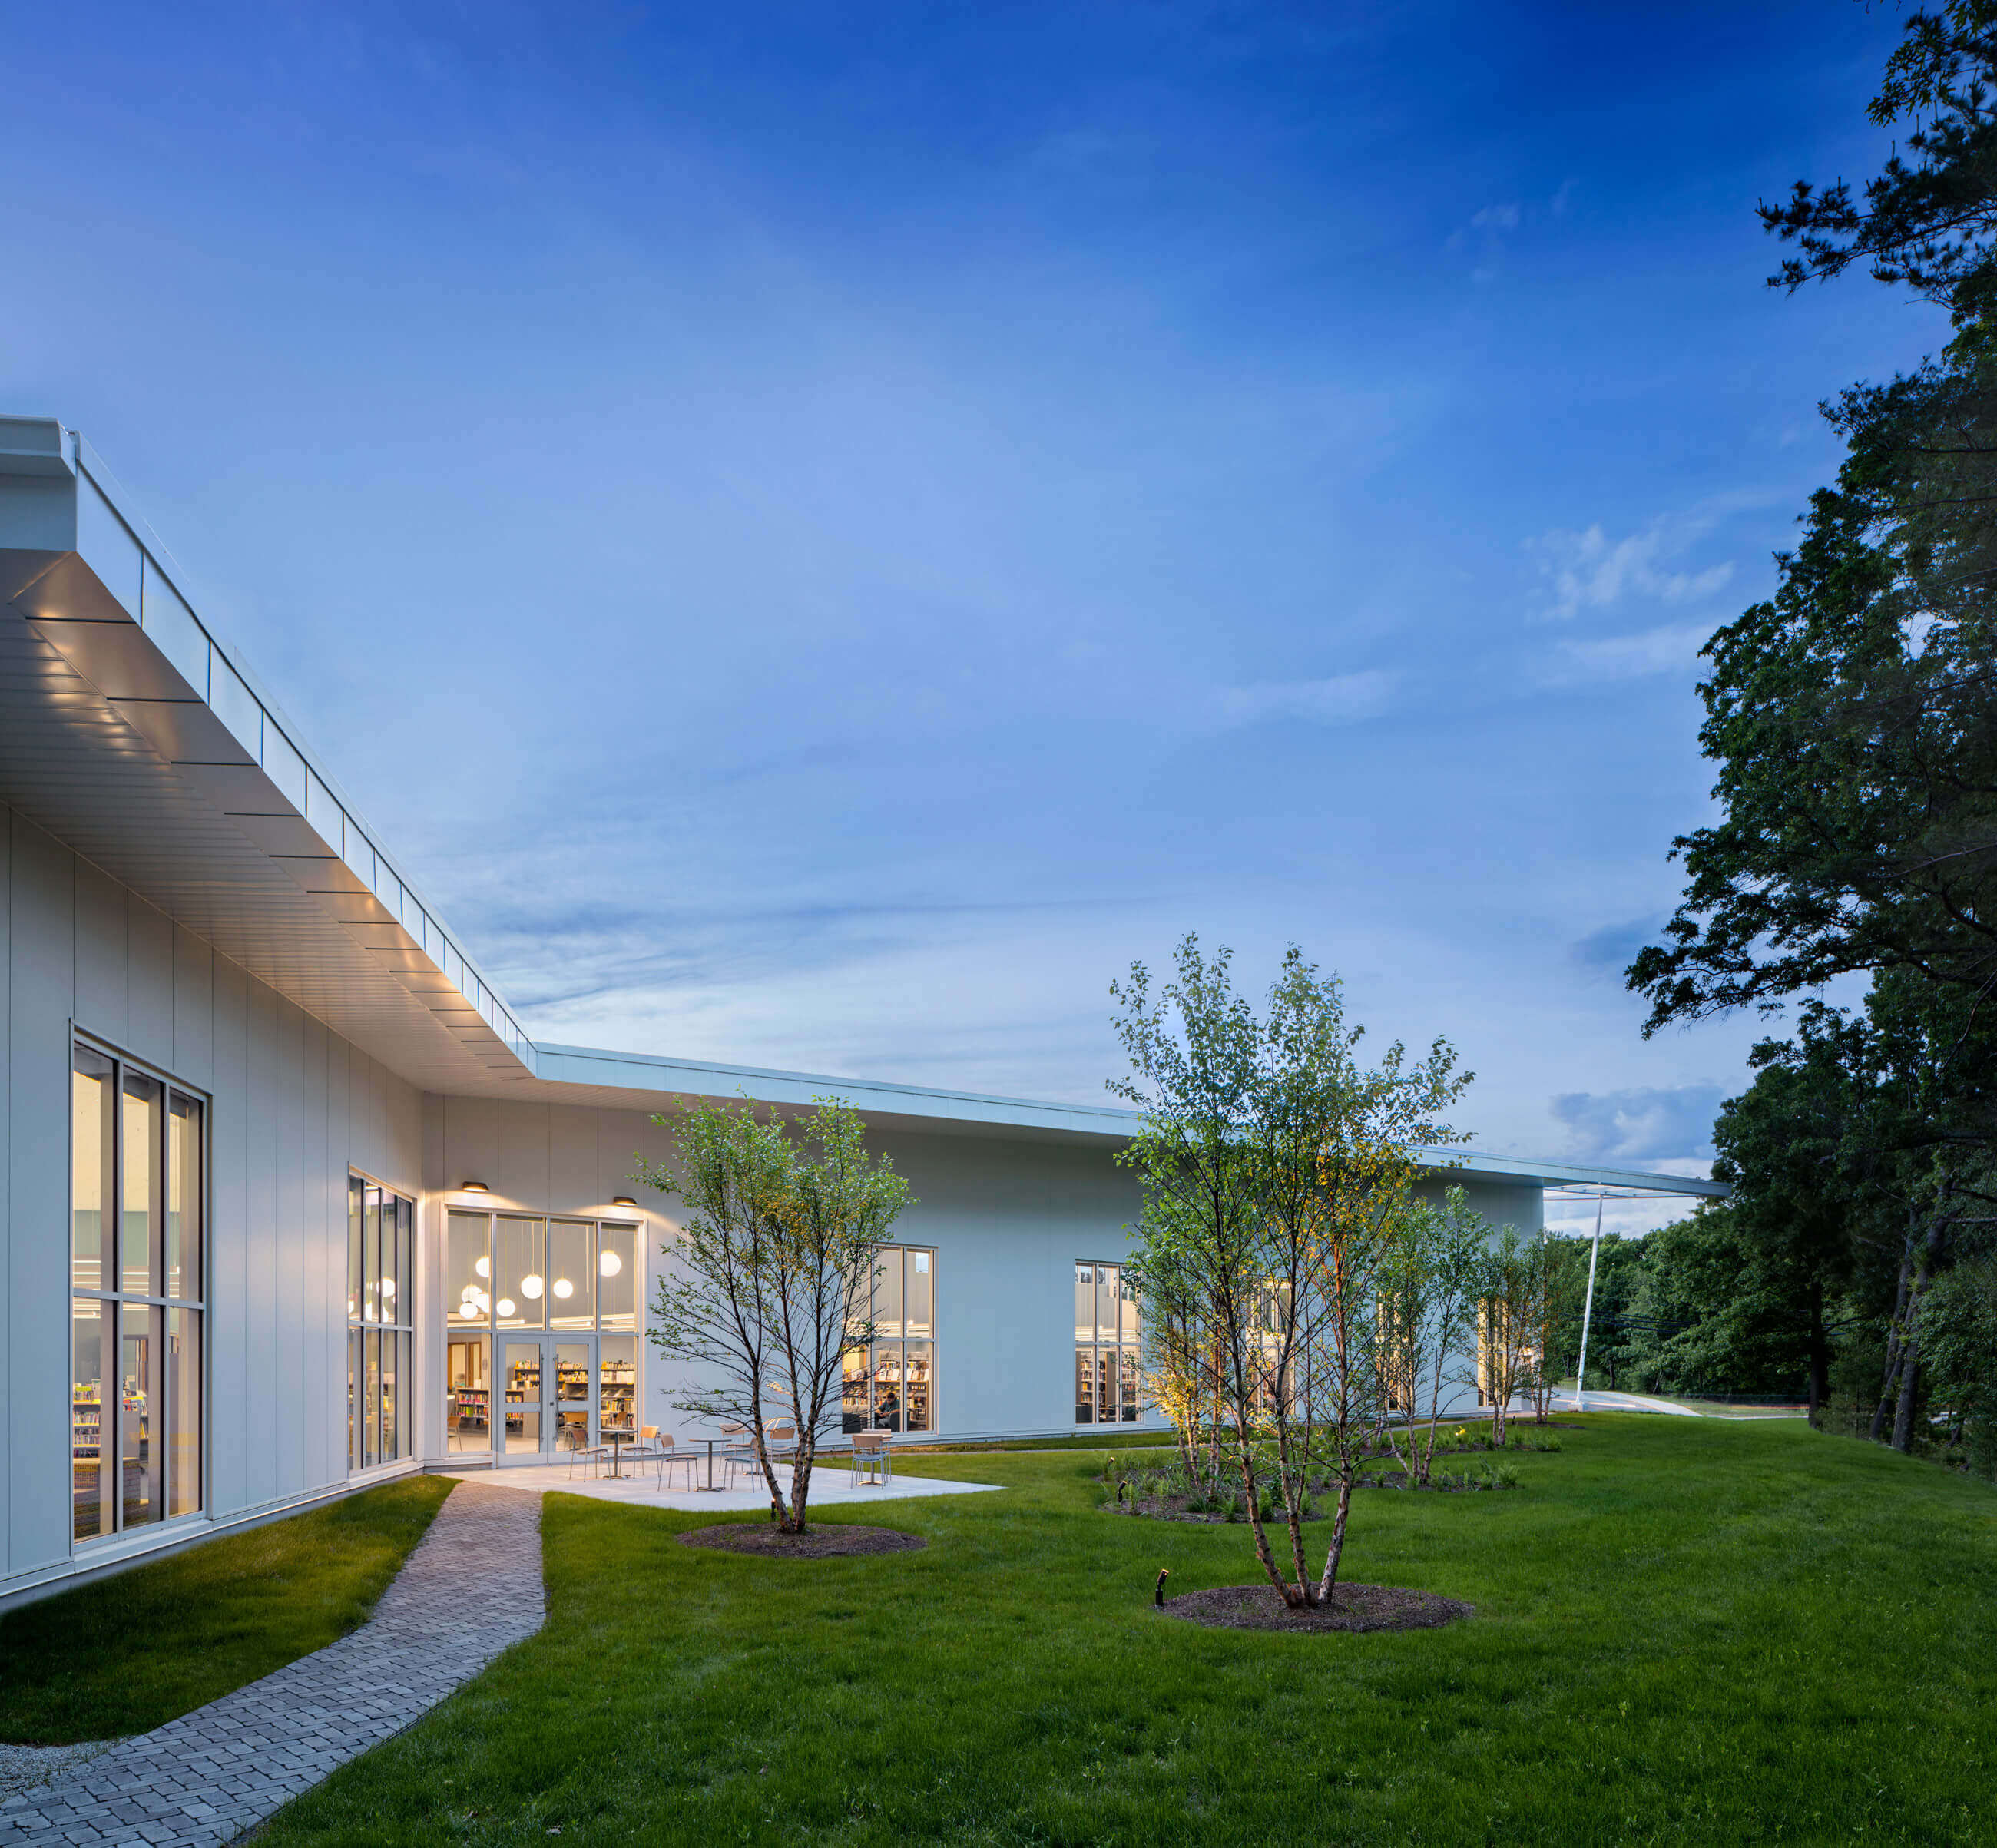 Exterior of the library at dusk, angled around a small courtyard and trees.